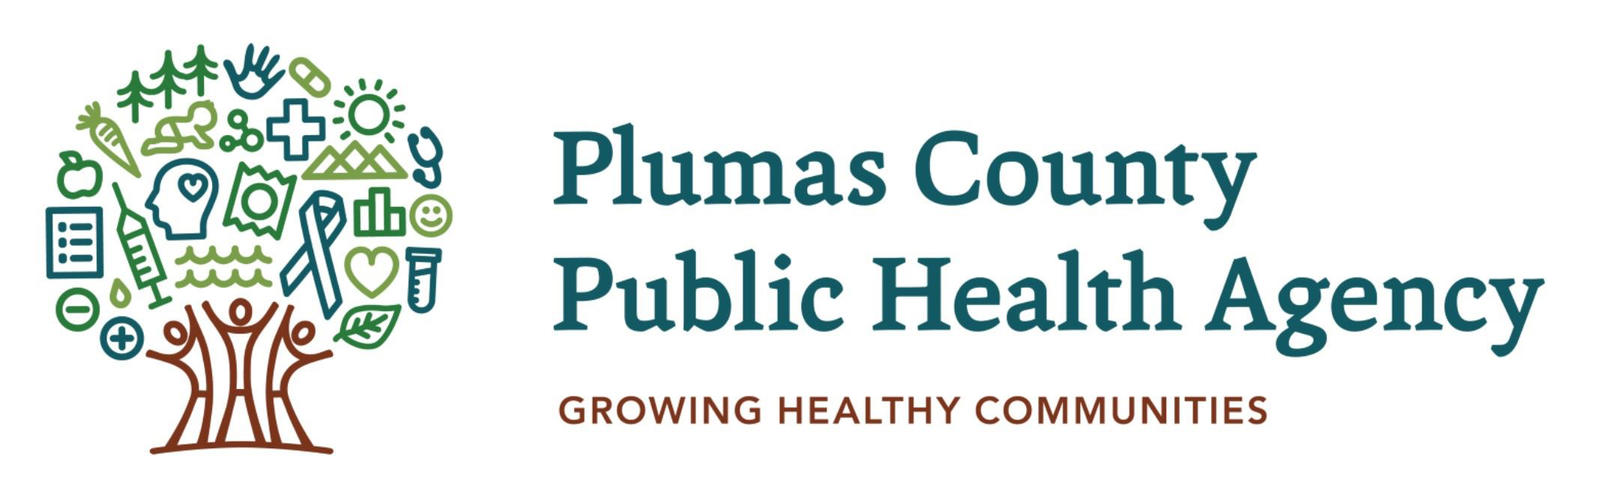 Plumas county public health agency